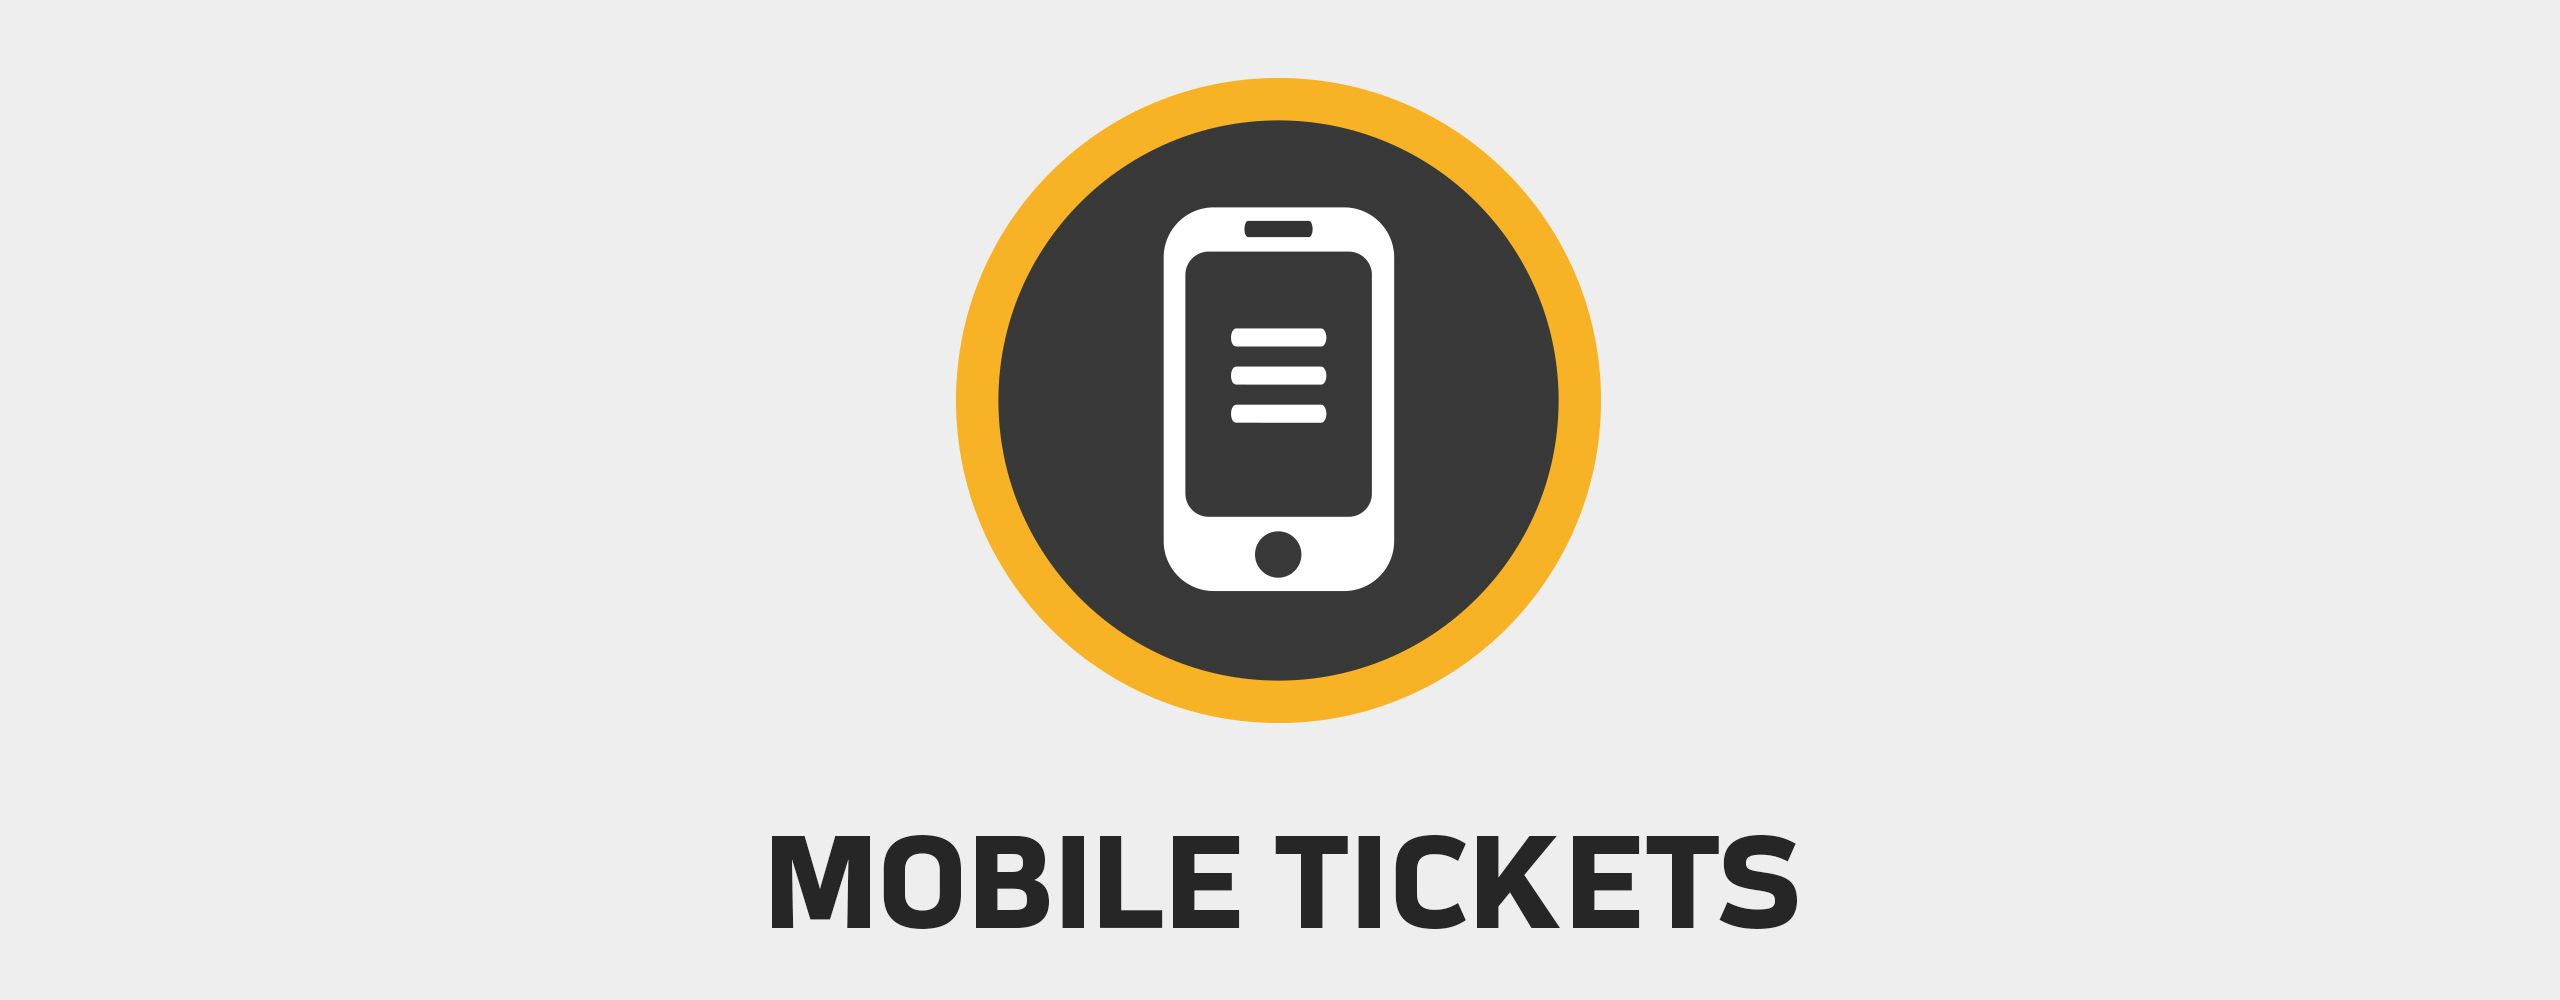 MobileTickets